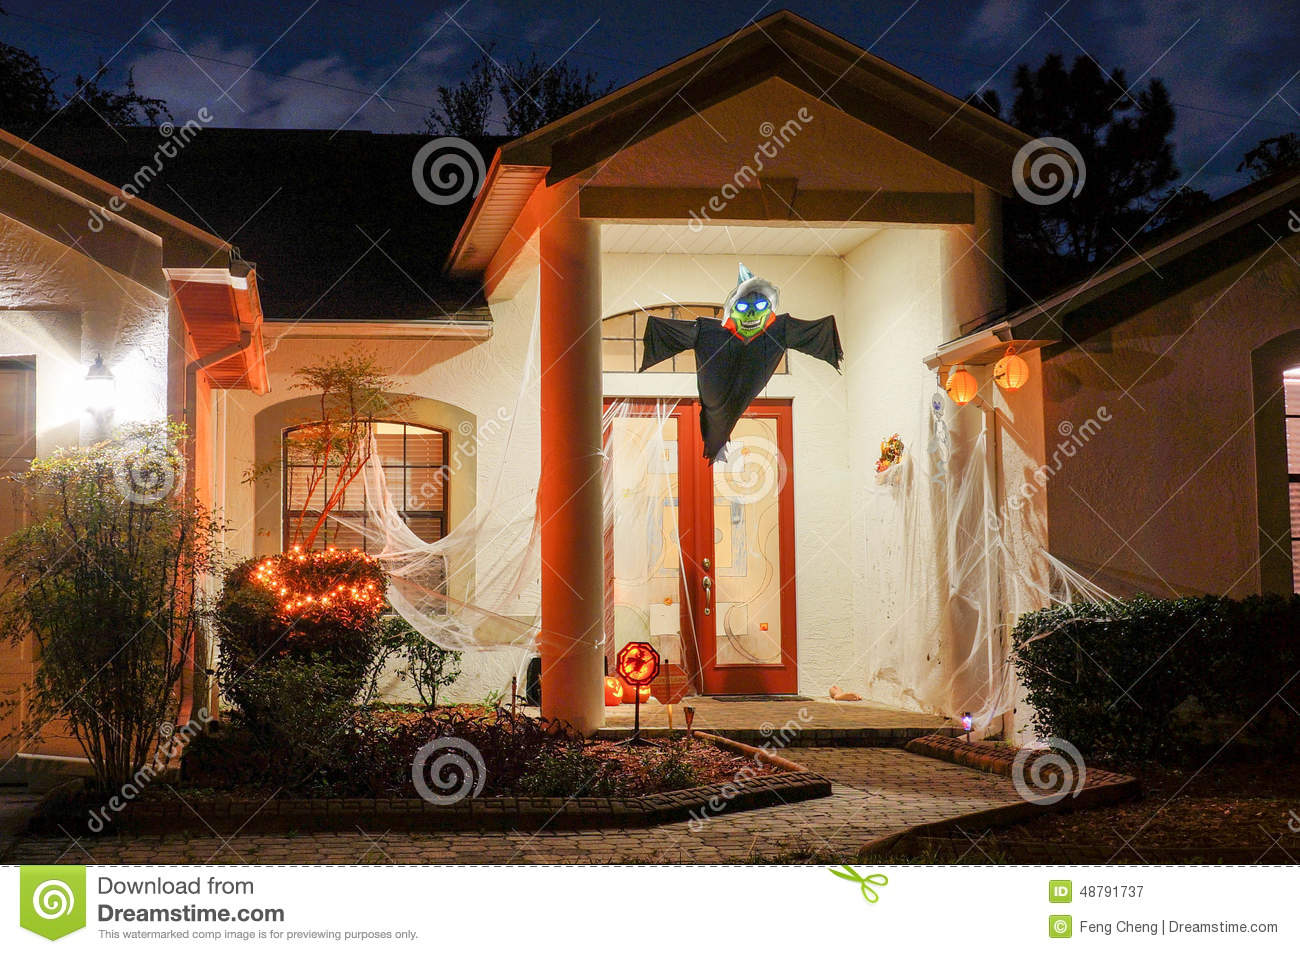 Halloween dekoration in einem haus stockbild bild 48791737 - Decoratie voor halloween is jezelf ...